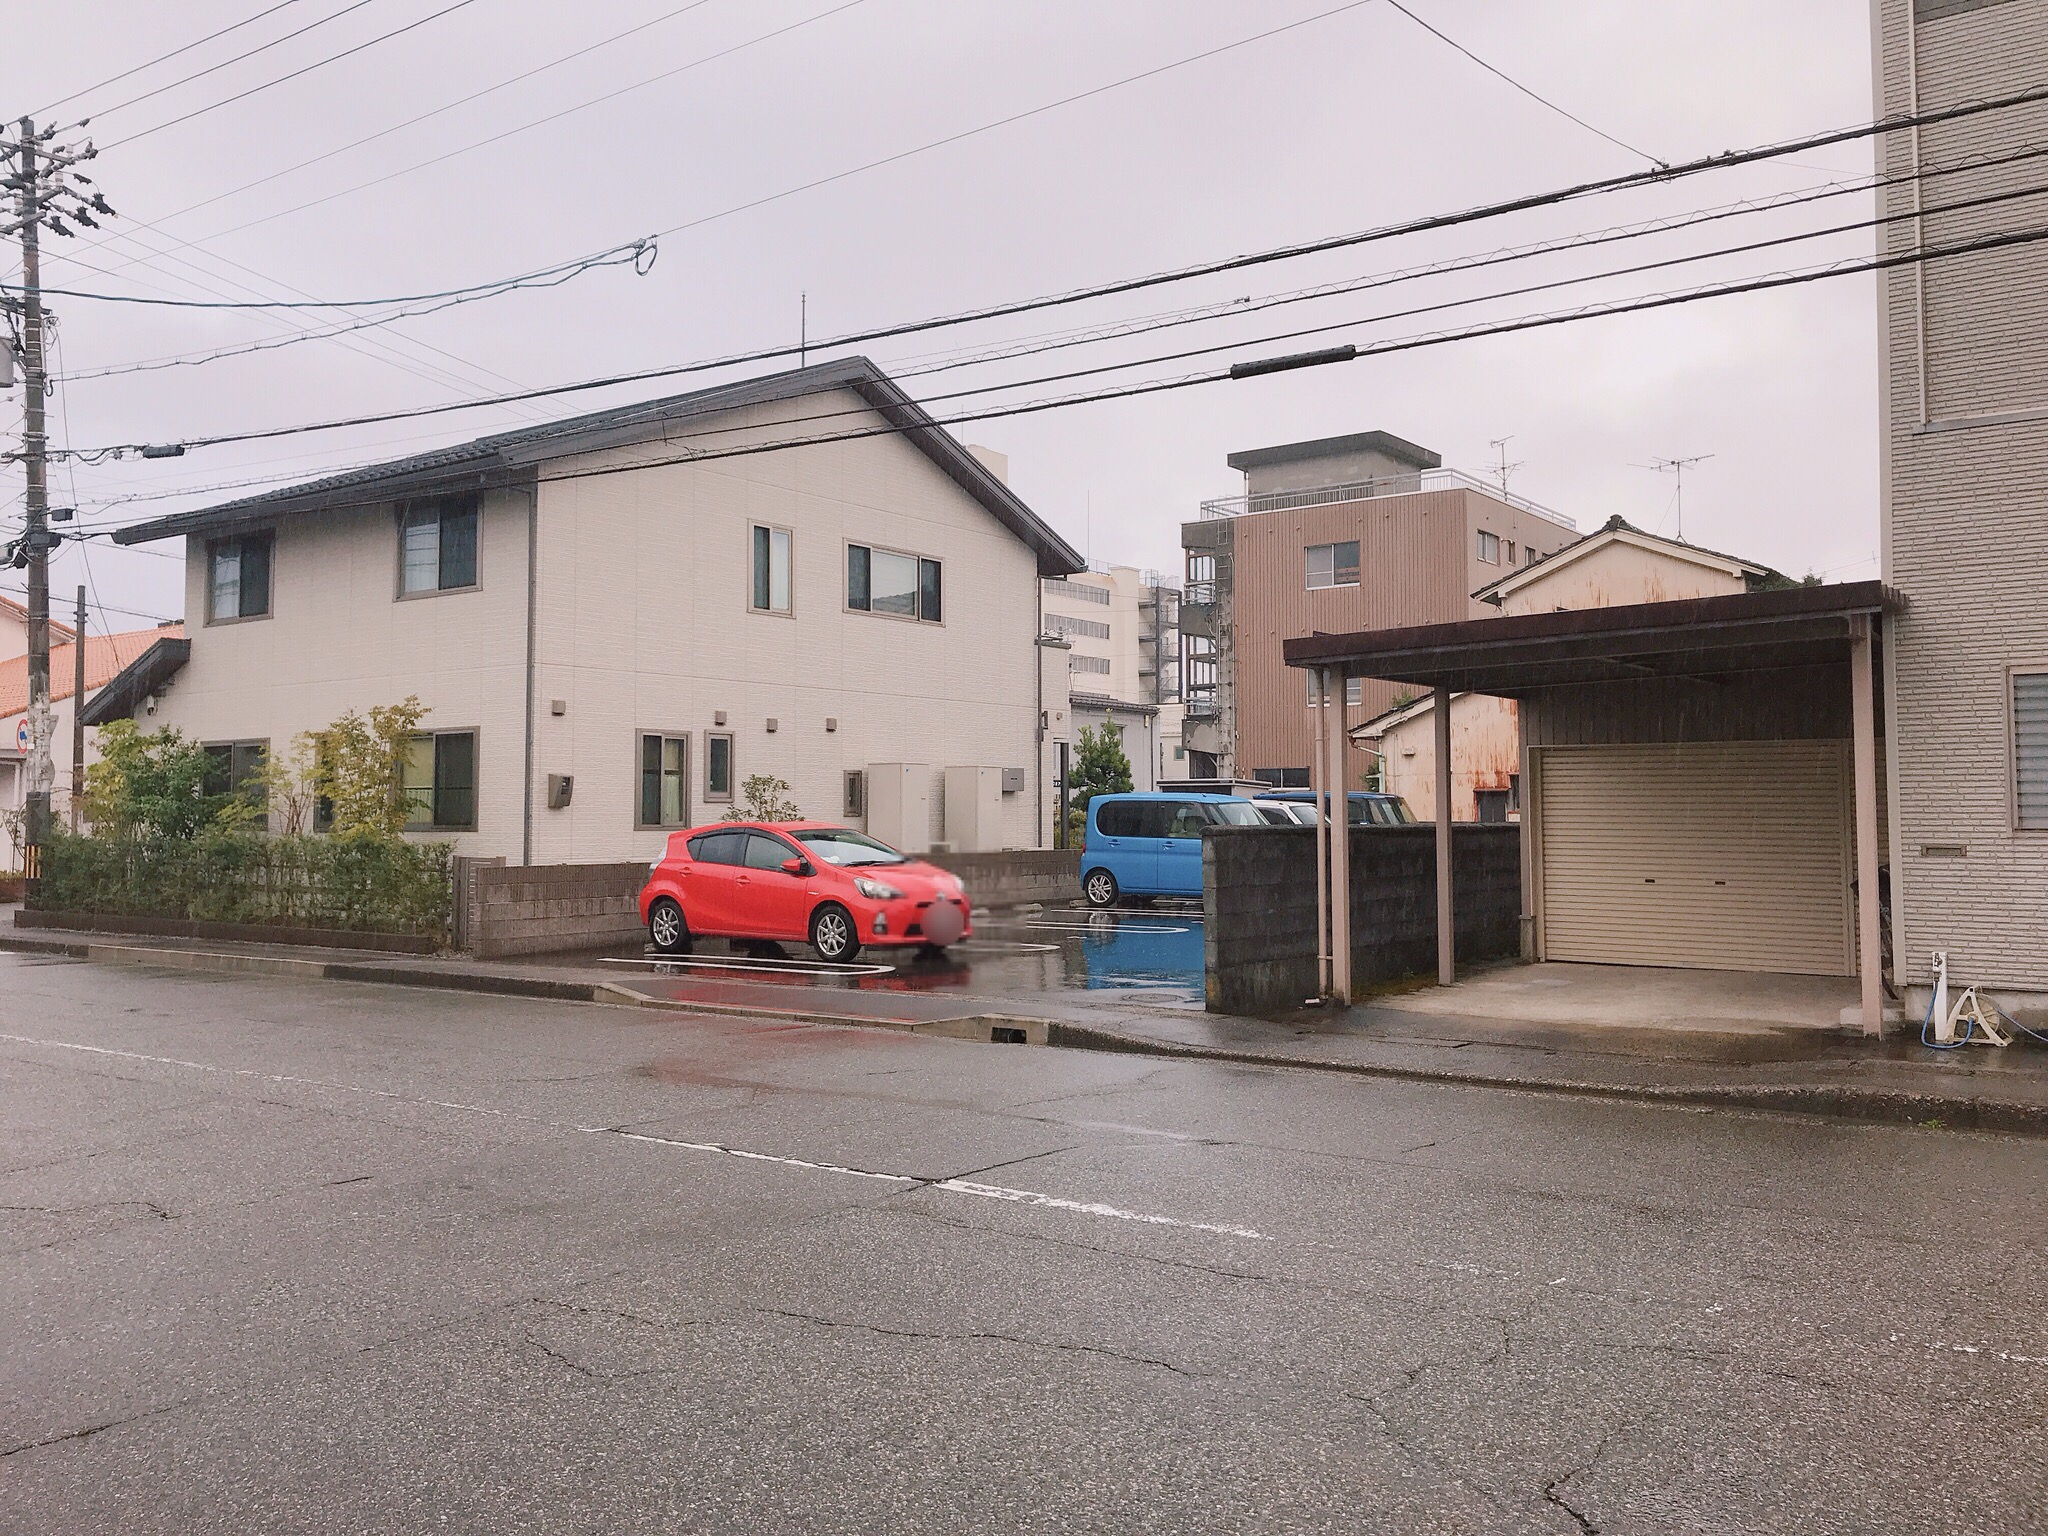 cafe amitie駐車場3